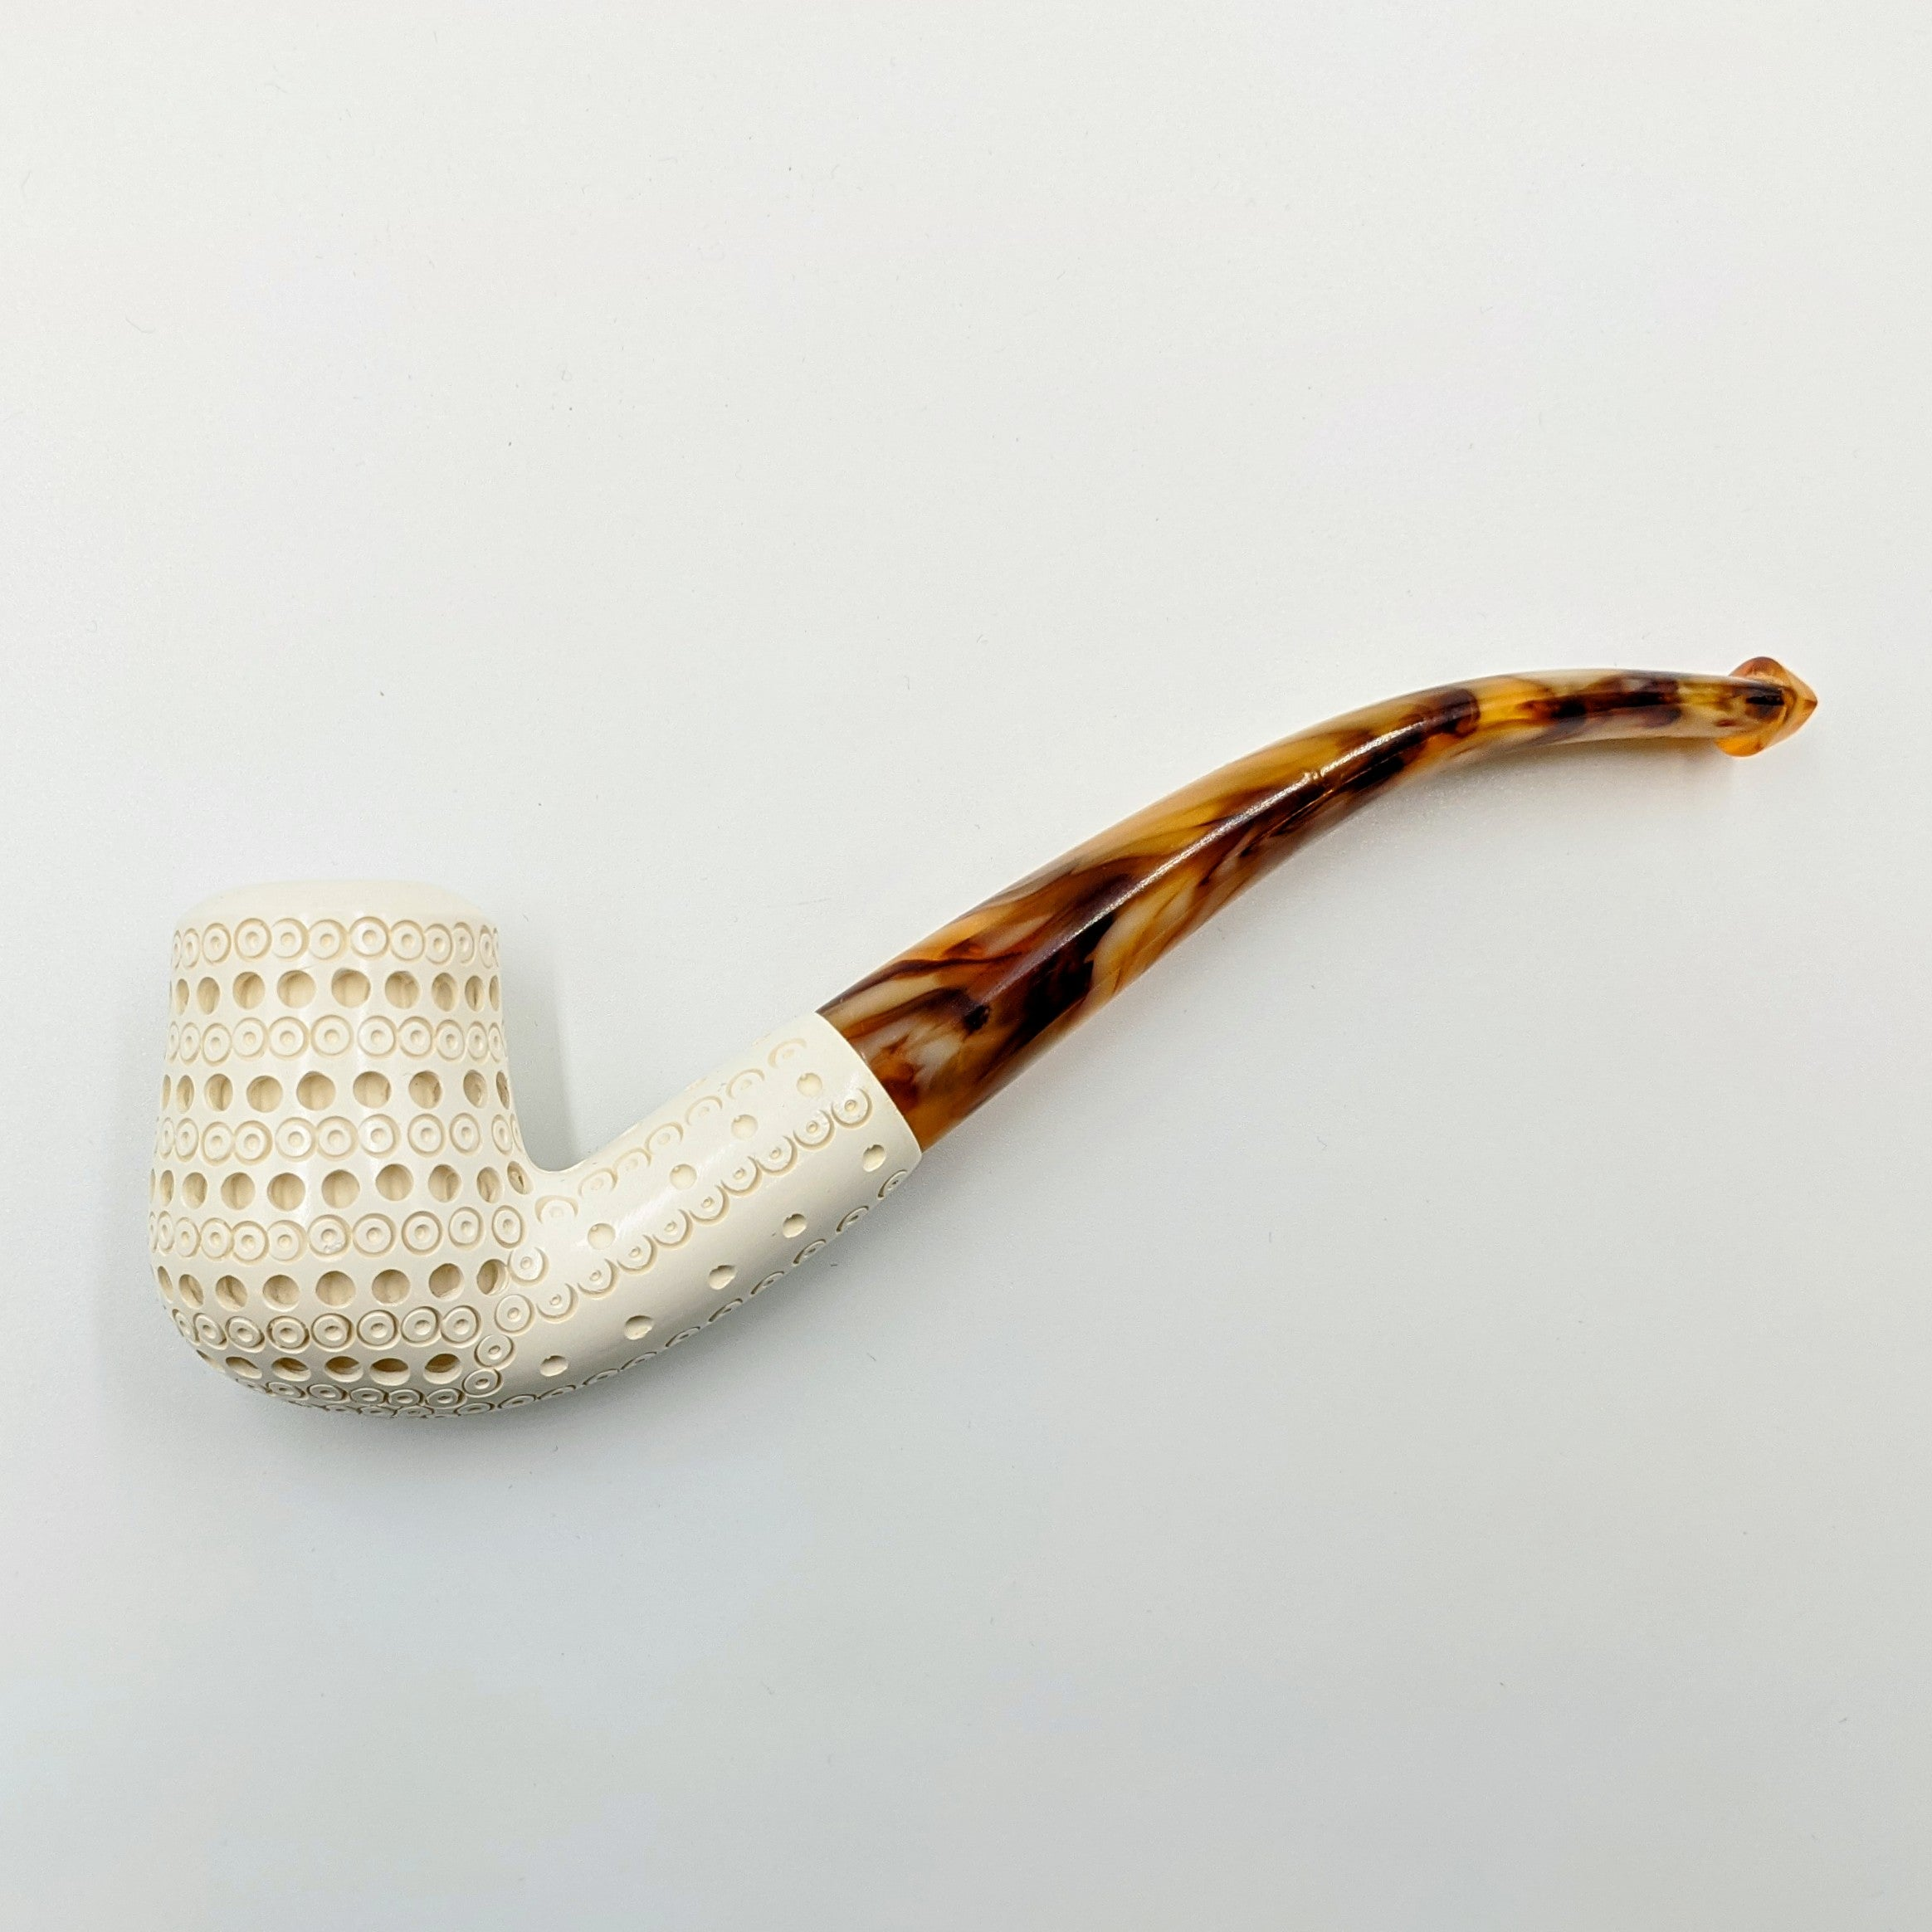 Paykoc Meerschaum Hand Carved Pipes. Click here to see collection!